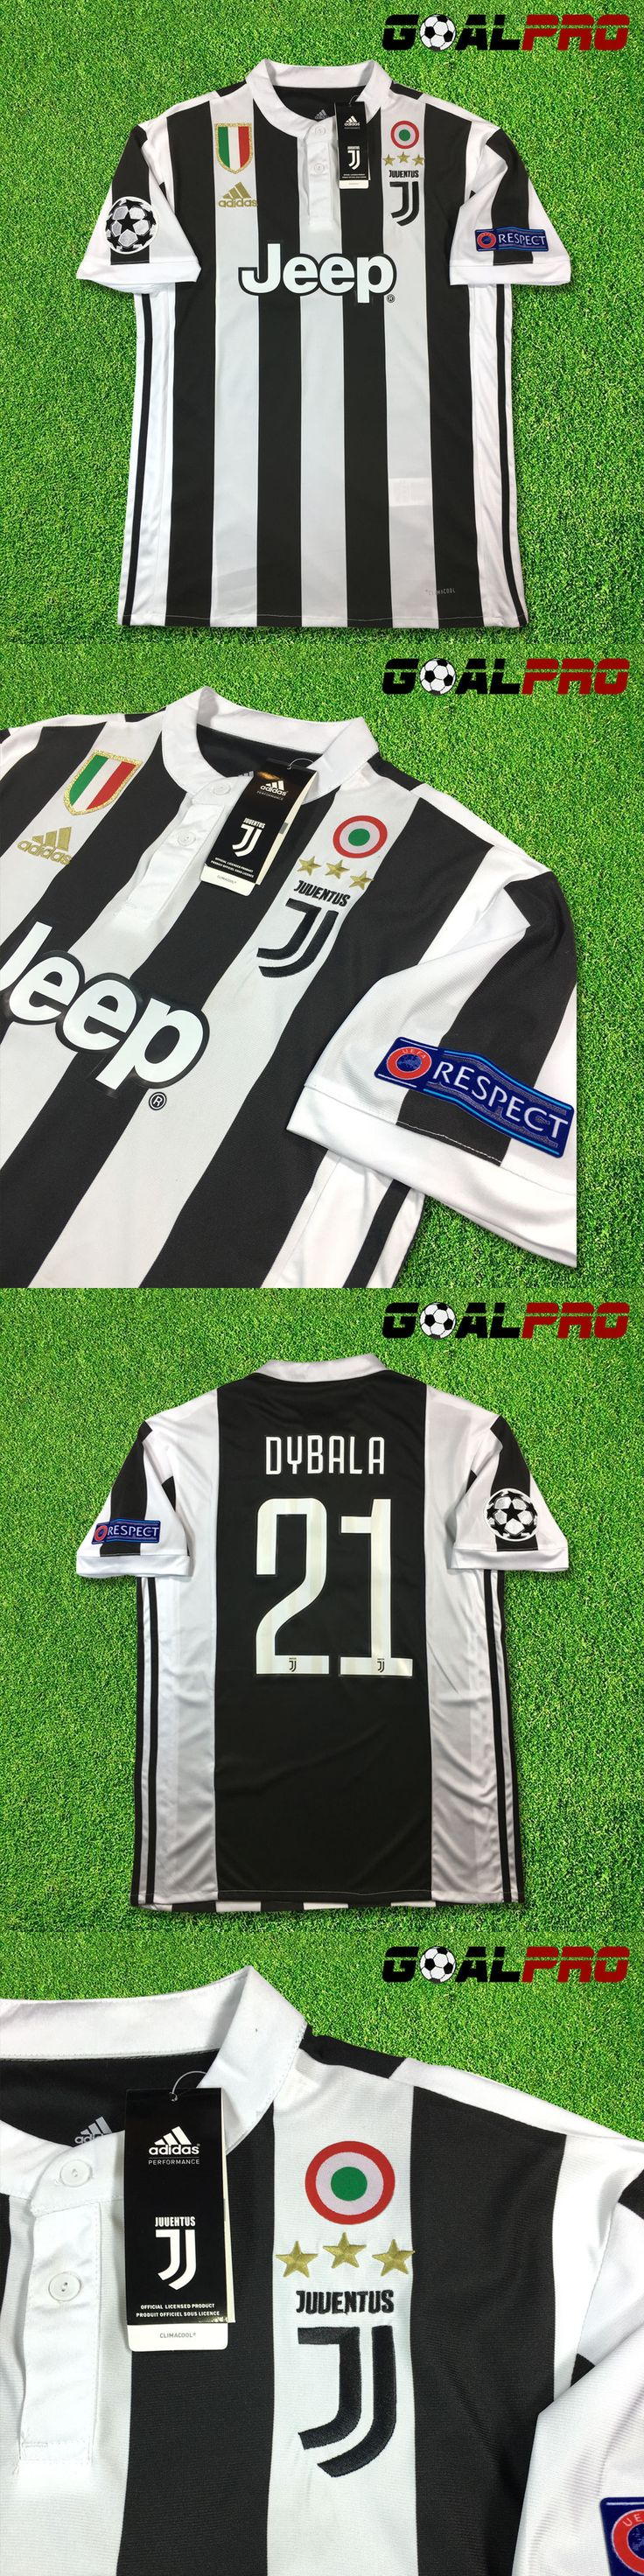 Men 123490: Juventus Home Jersey 2017-18 Dybala Uefa Champions League -> BUY IT NOW ONLY: $54 on eBay!